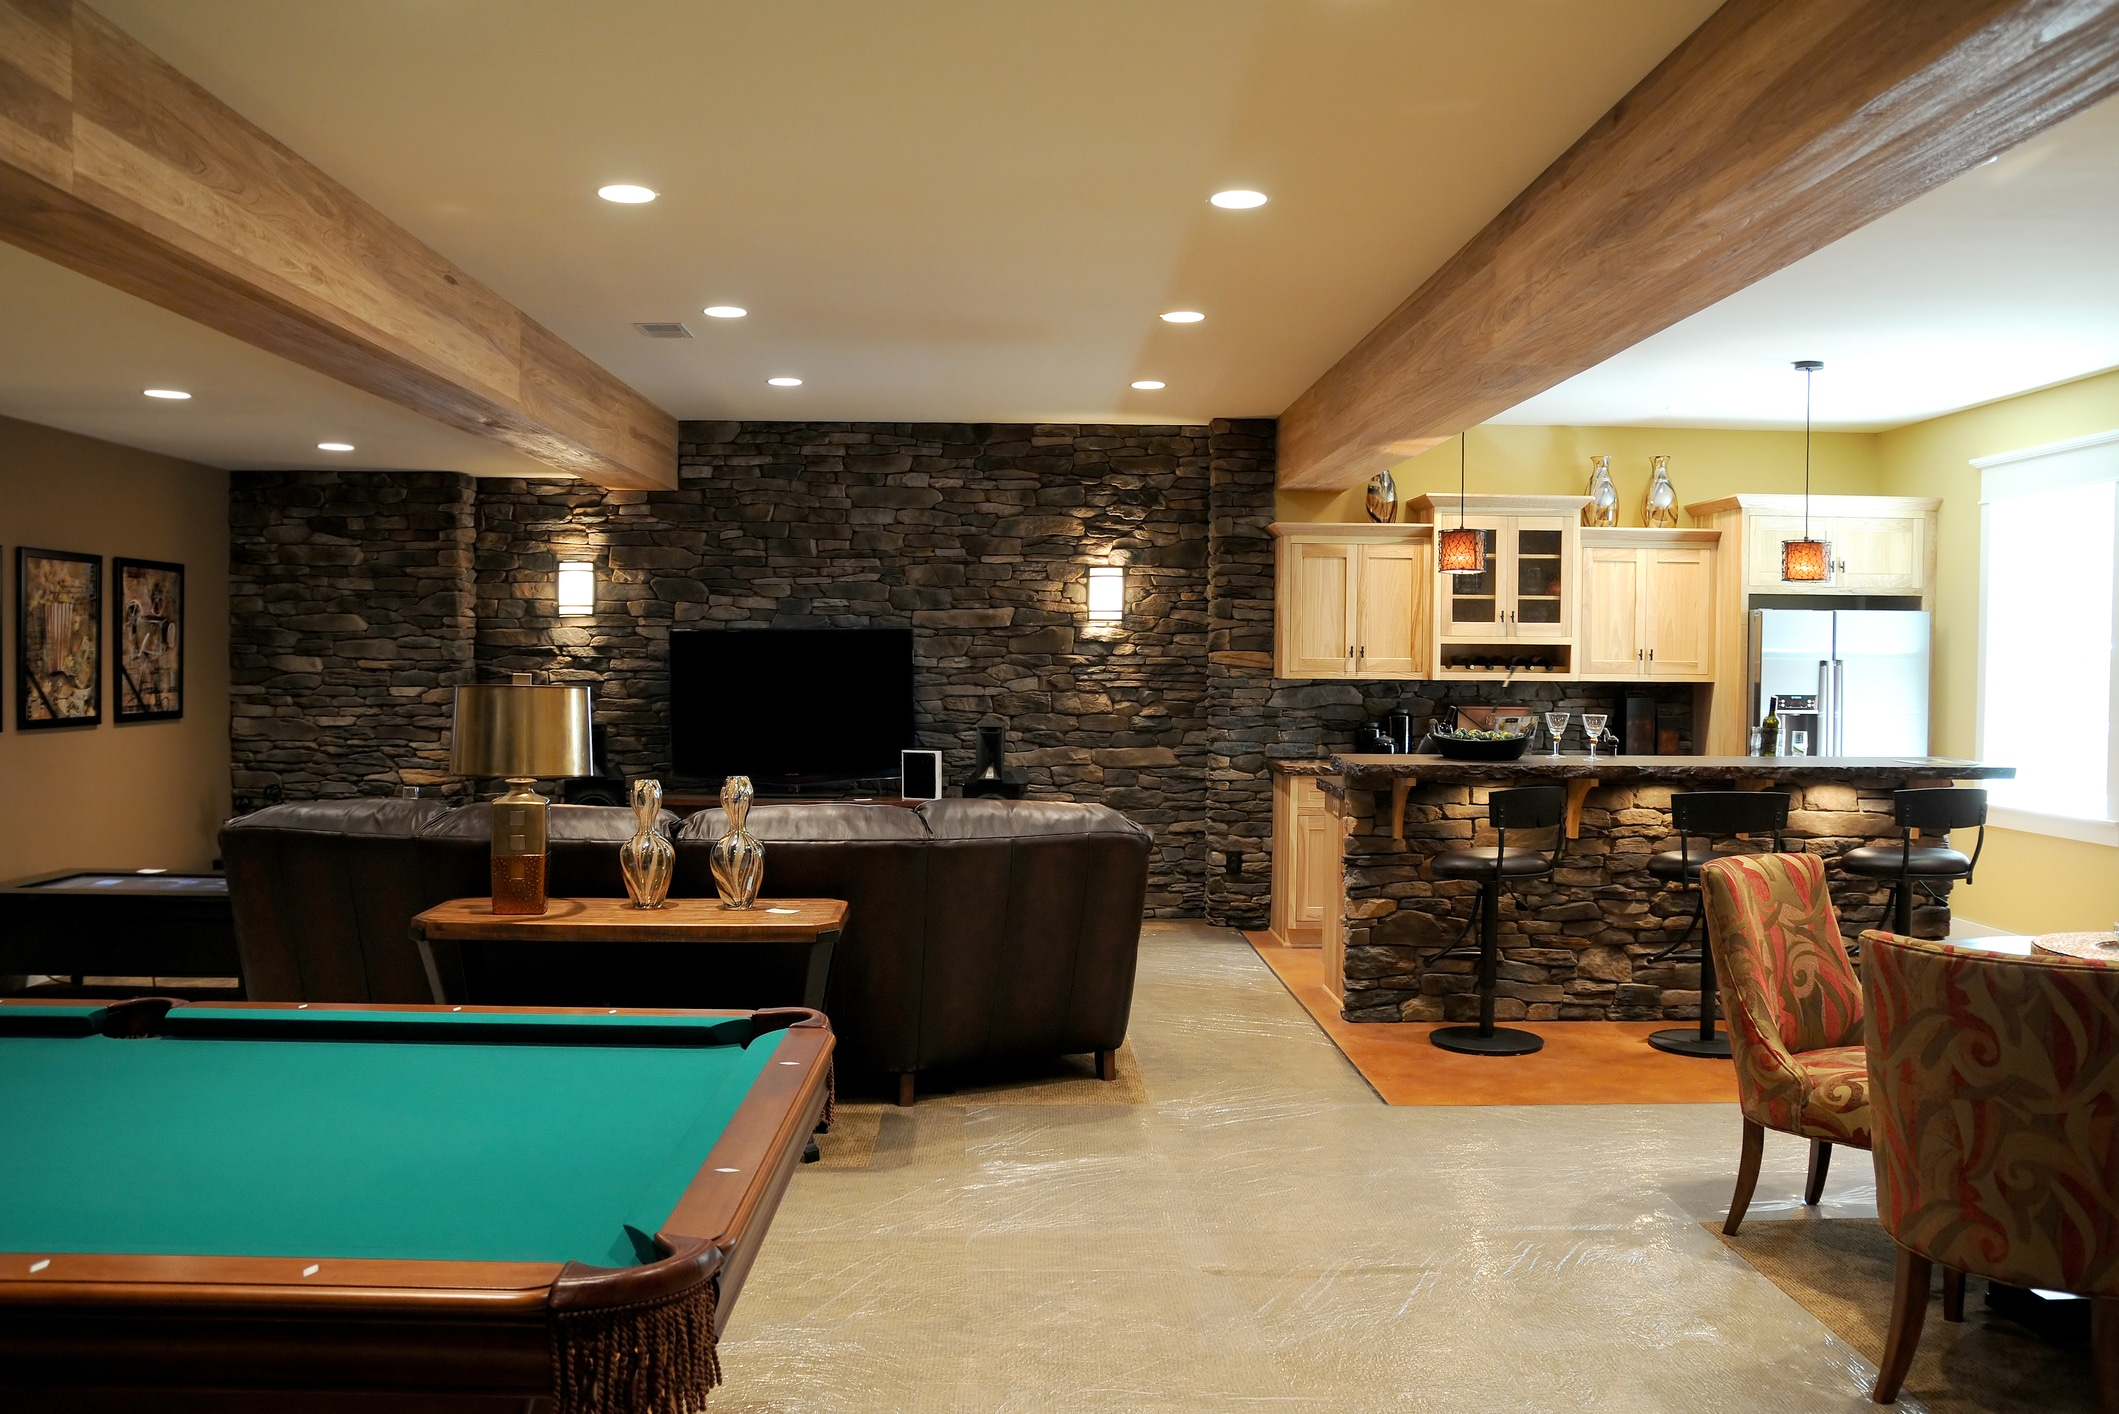 Renovated Basements Calgary Basement Renovations  Basement Development Experts